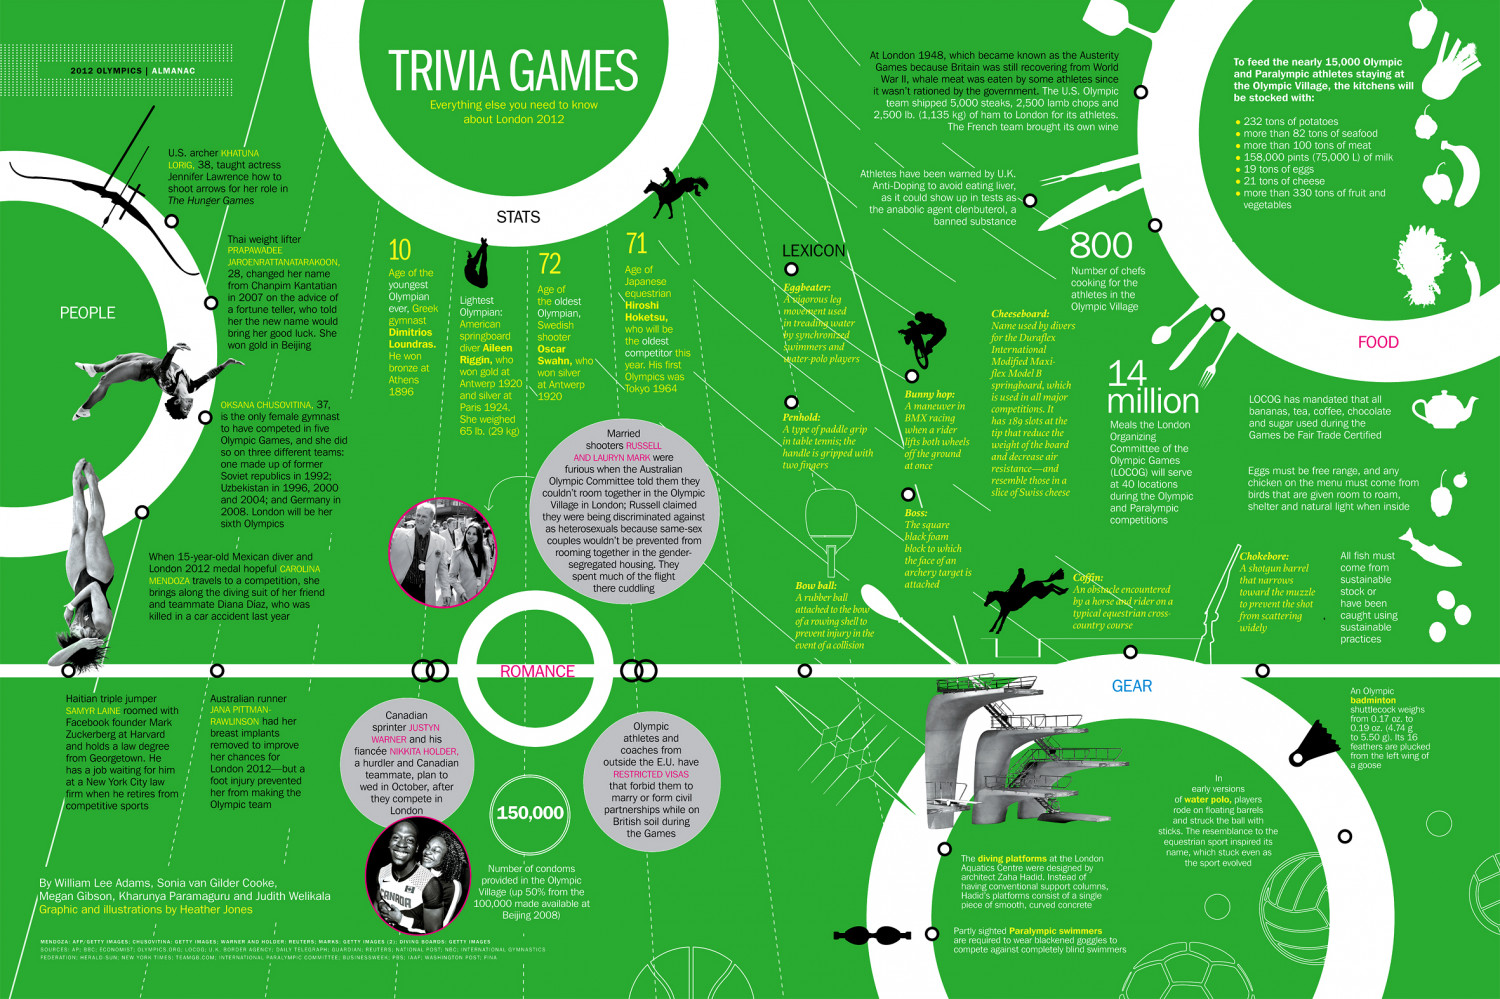 Trivia Games Infographic